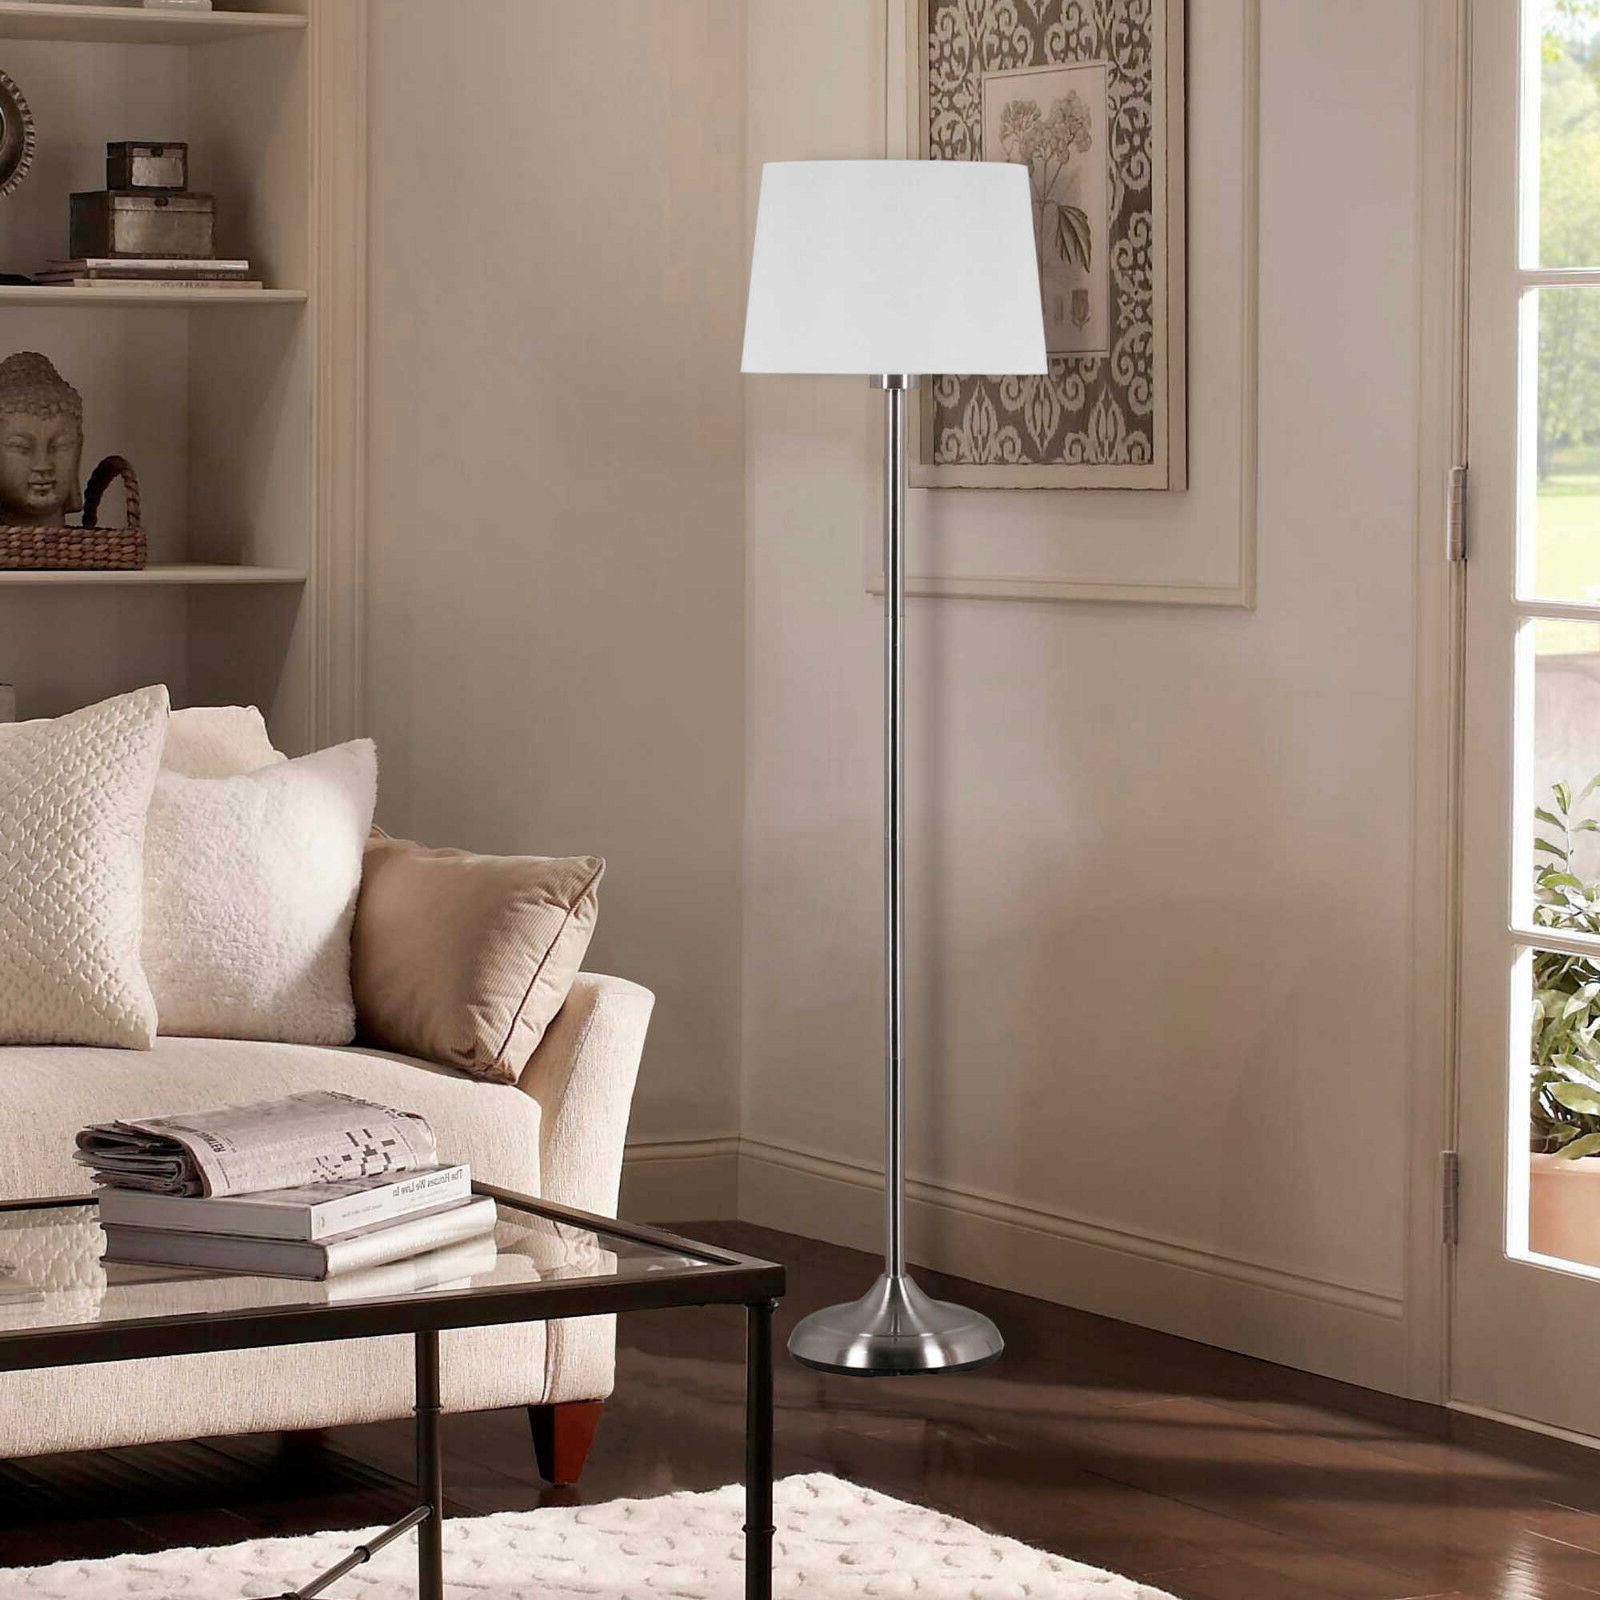 Adesso Floor Lamp - Linen - NEW FreeShip